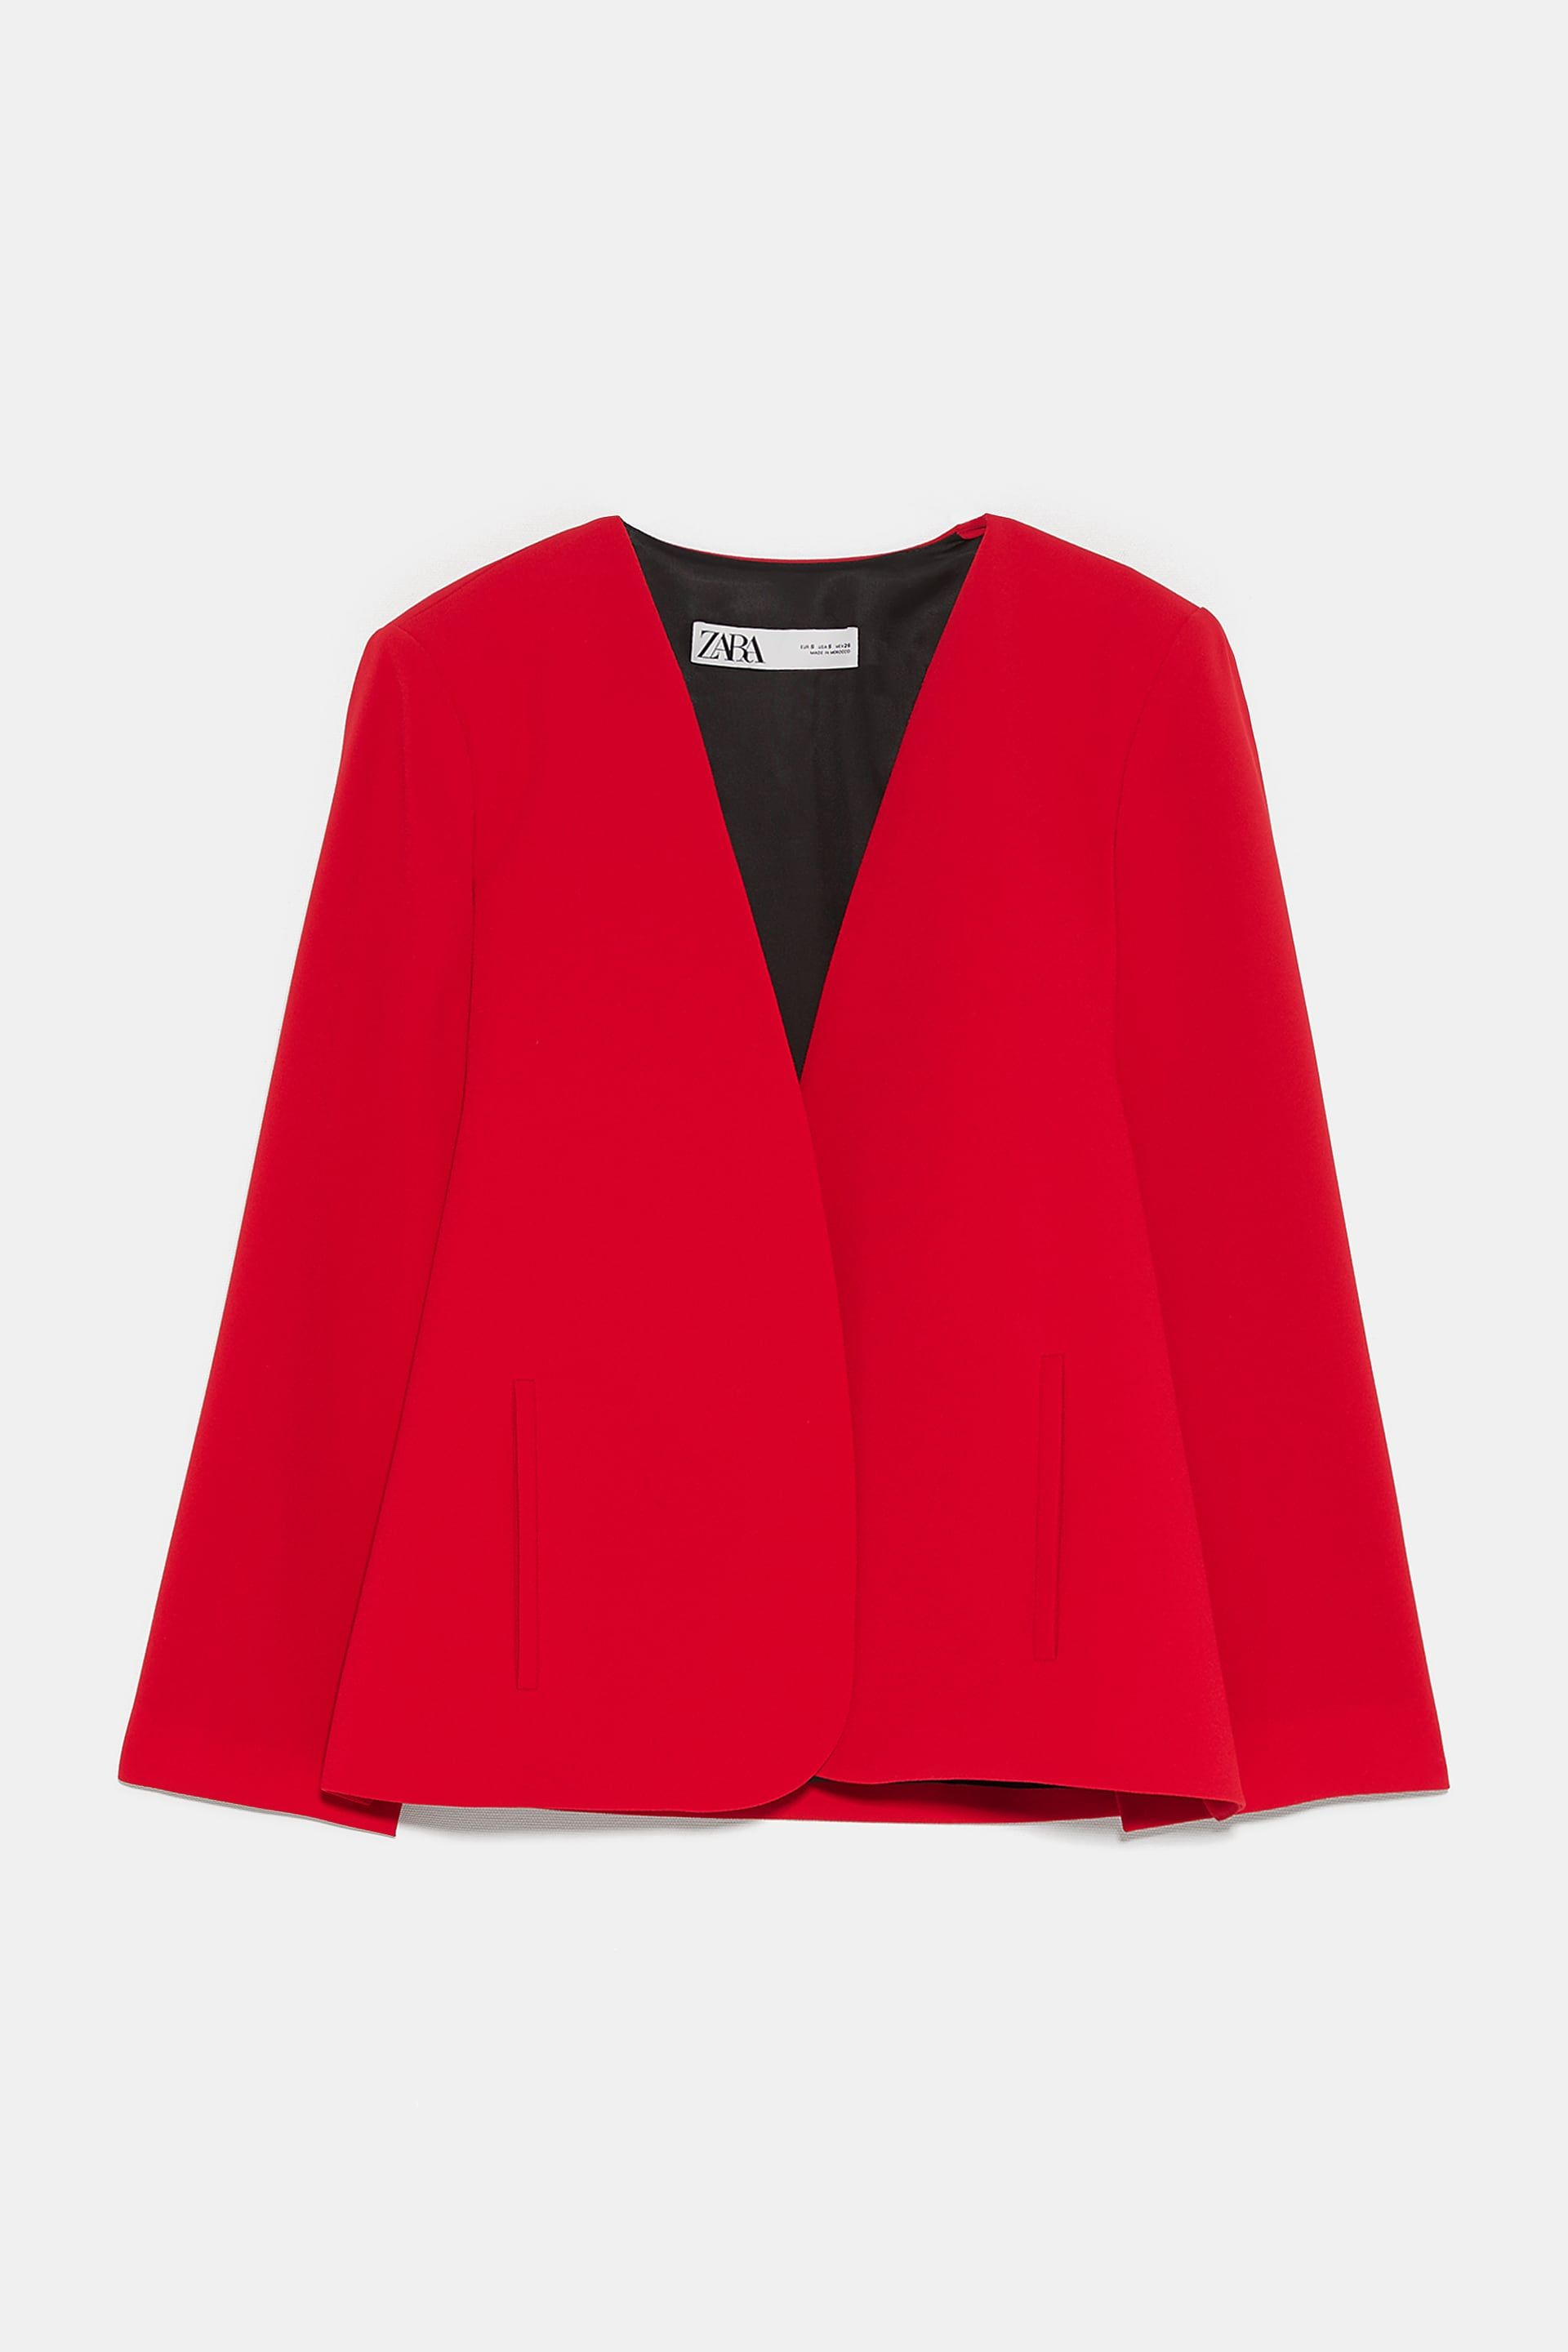 ZARA Red Hooded Cape Cardigan with Black Stripe Size Large